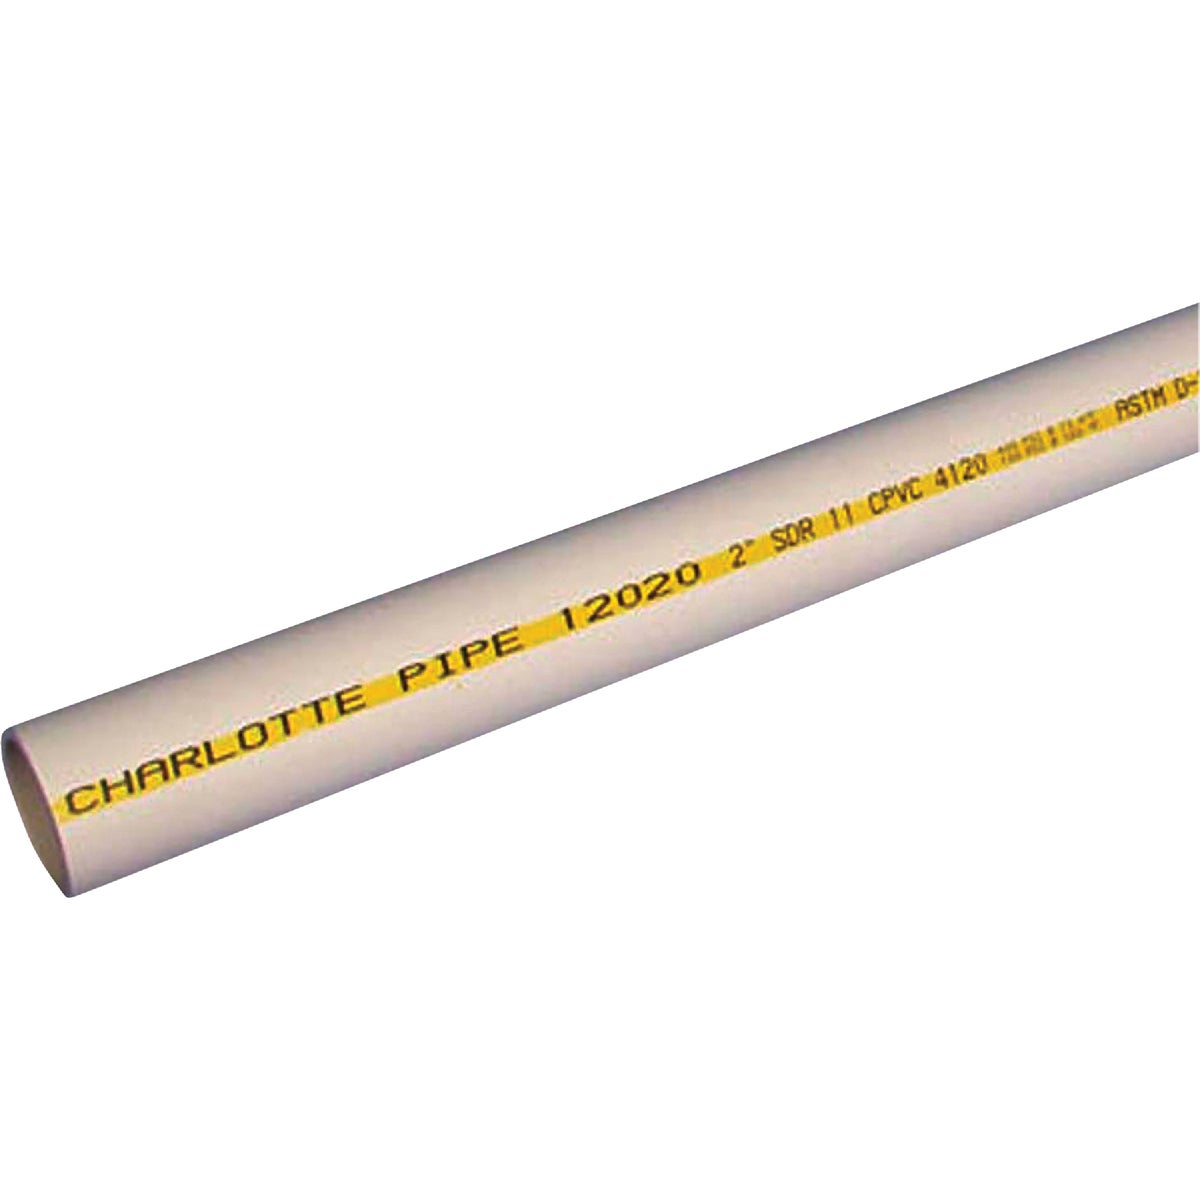 "1""X10' CPVC-FLOWG PIPE - CTS120100600 by Charlotte Pipe"